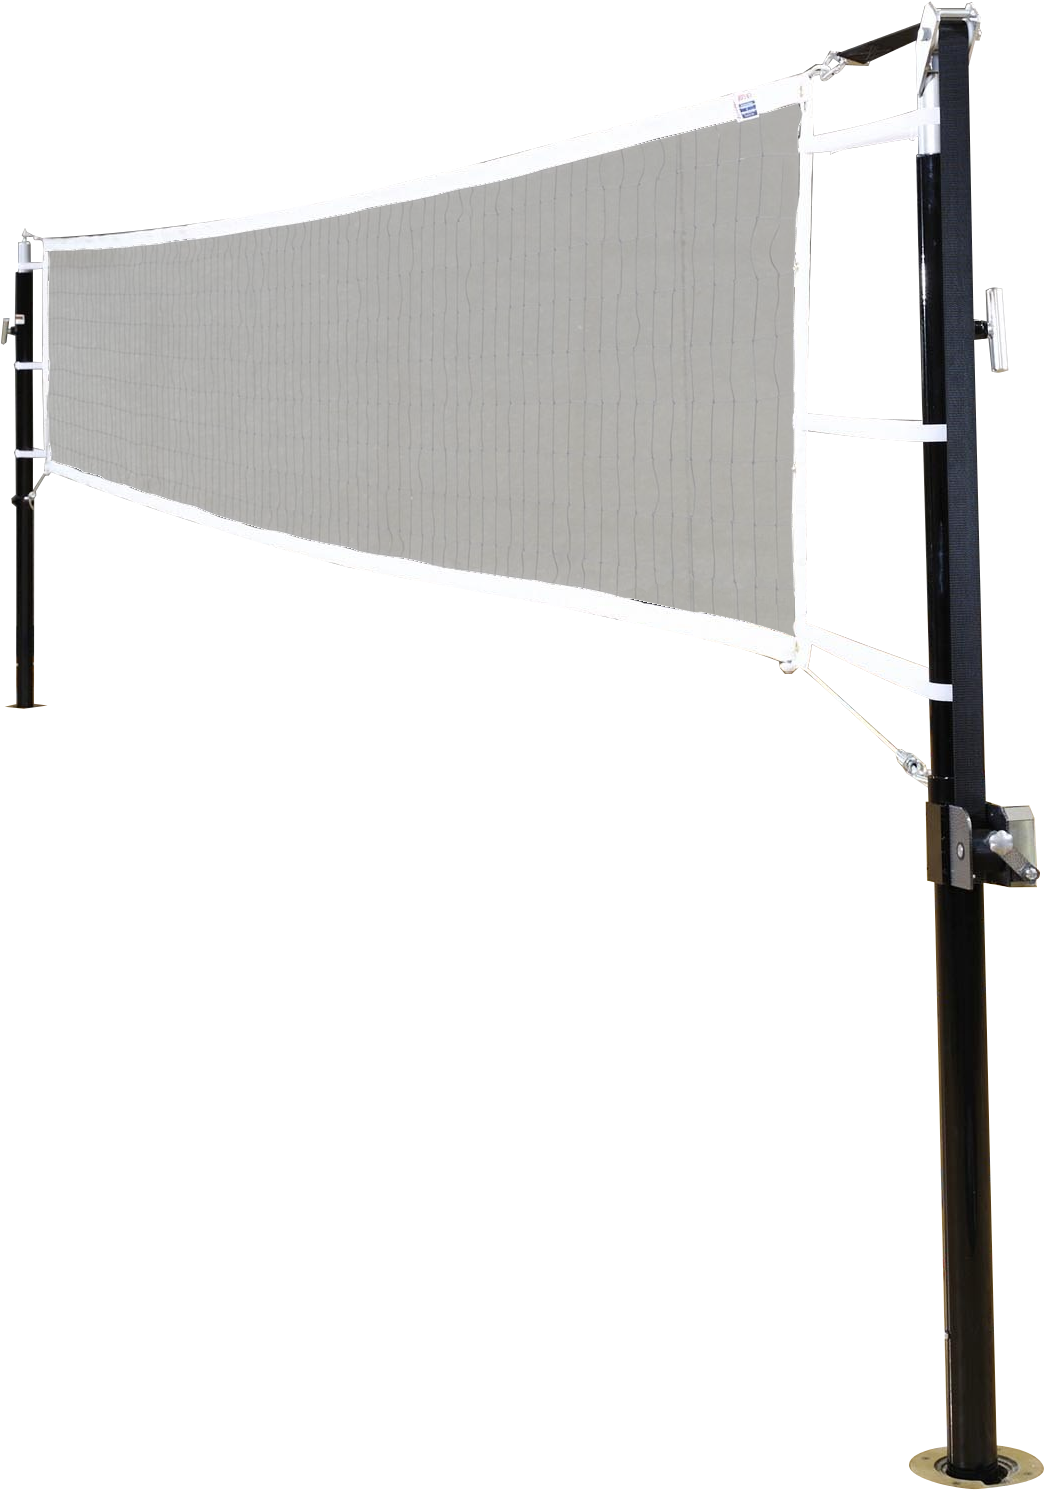 Transparent how to draw a volleyball net clipart - White Volleyball Goal Png No Background - Volleyball Net Transparent